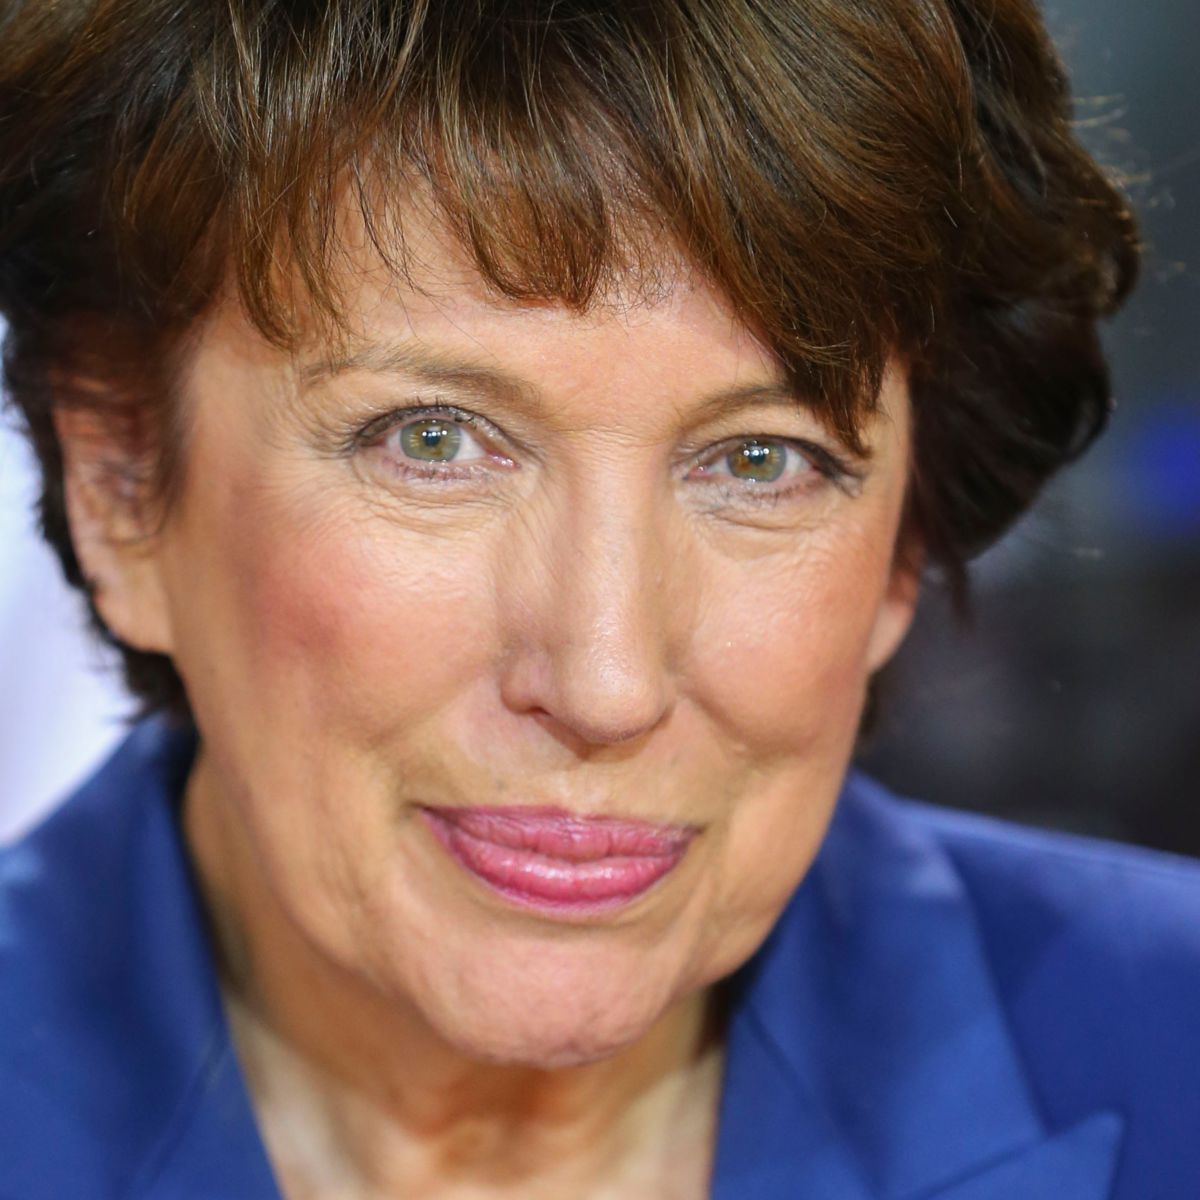 D:\Usuarios\Gustavo\Pictures\roselyne-bachelot .jpeg